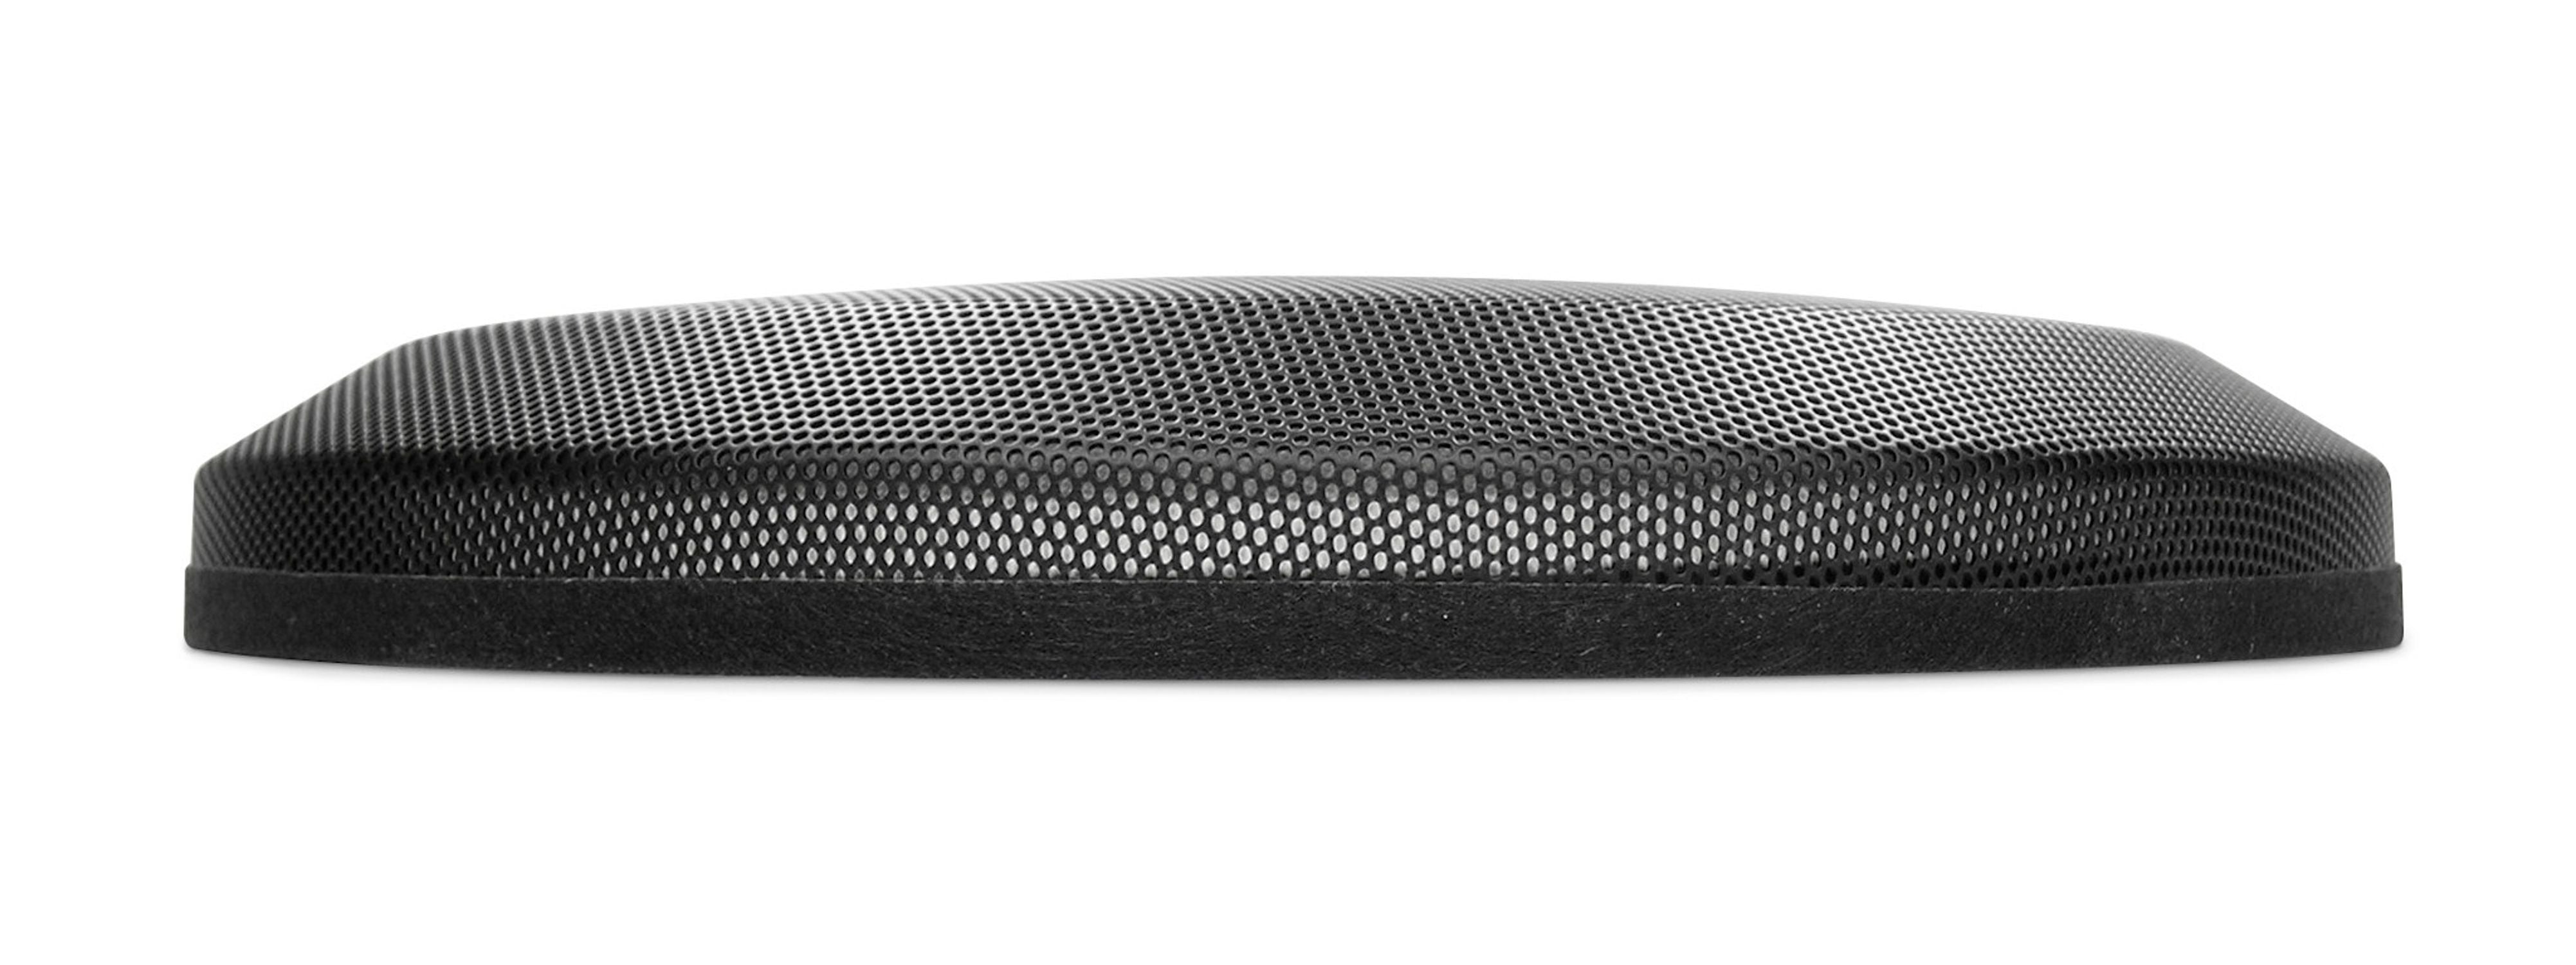 Profile of SGR-10TW3 Subwoofer Grille